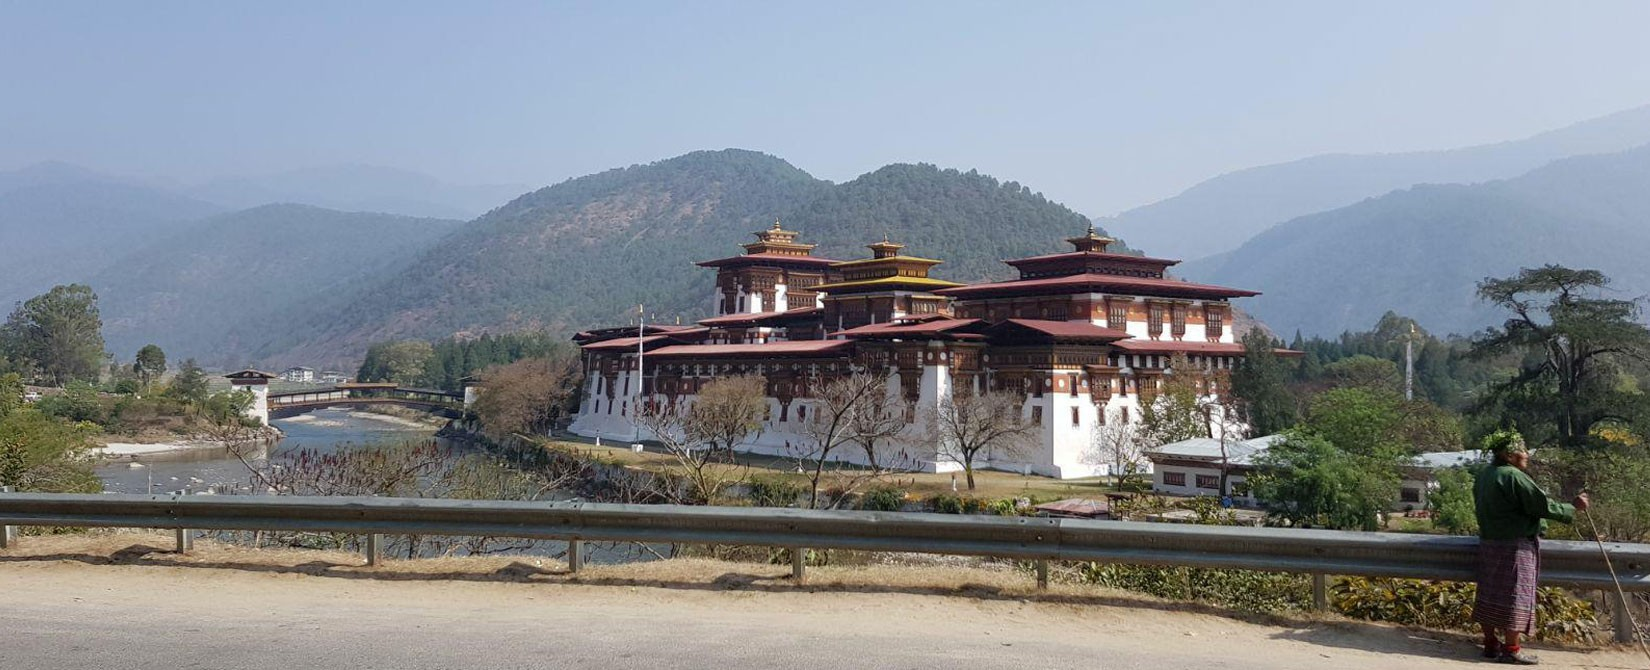 Bhutan Land of Thunder Dragon